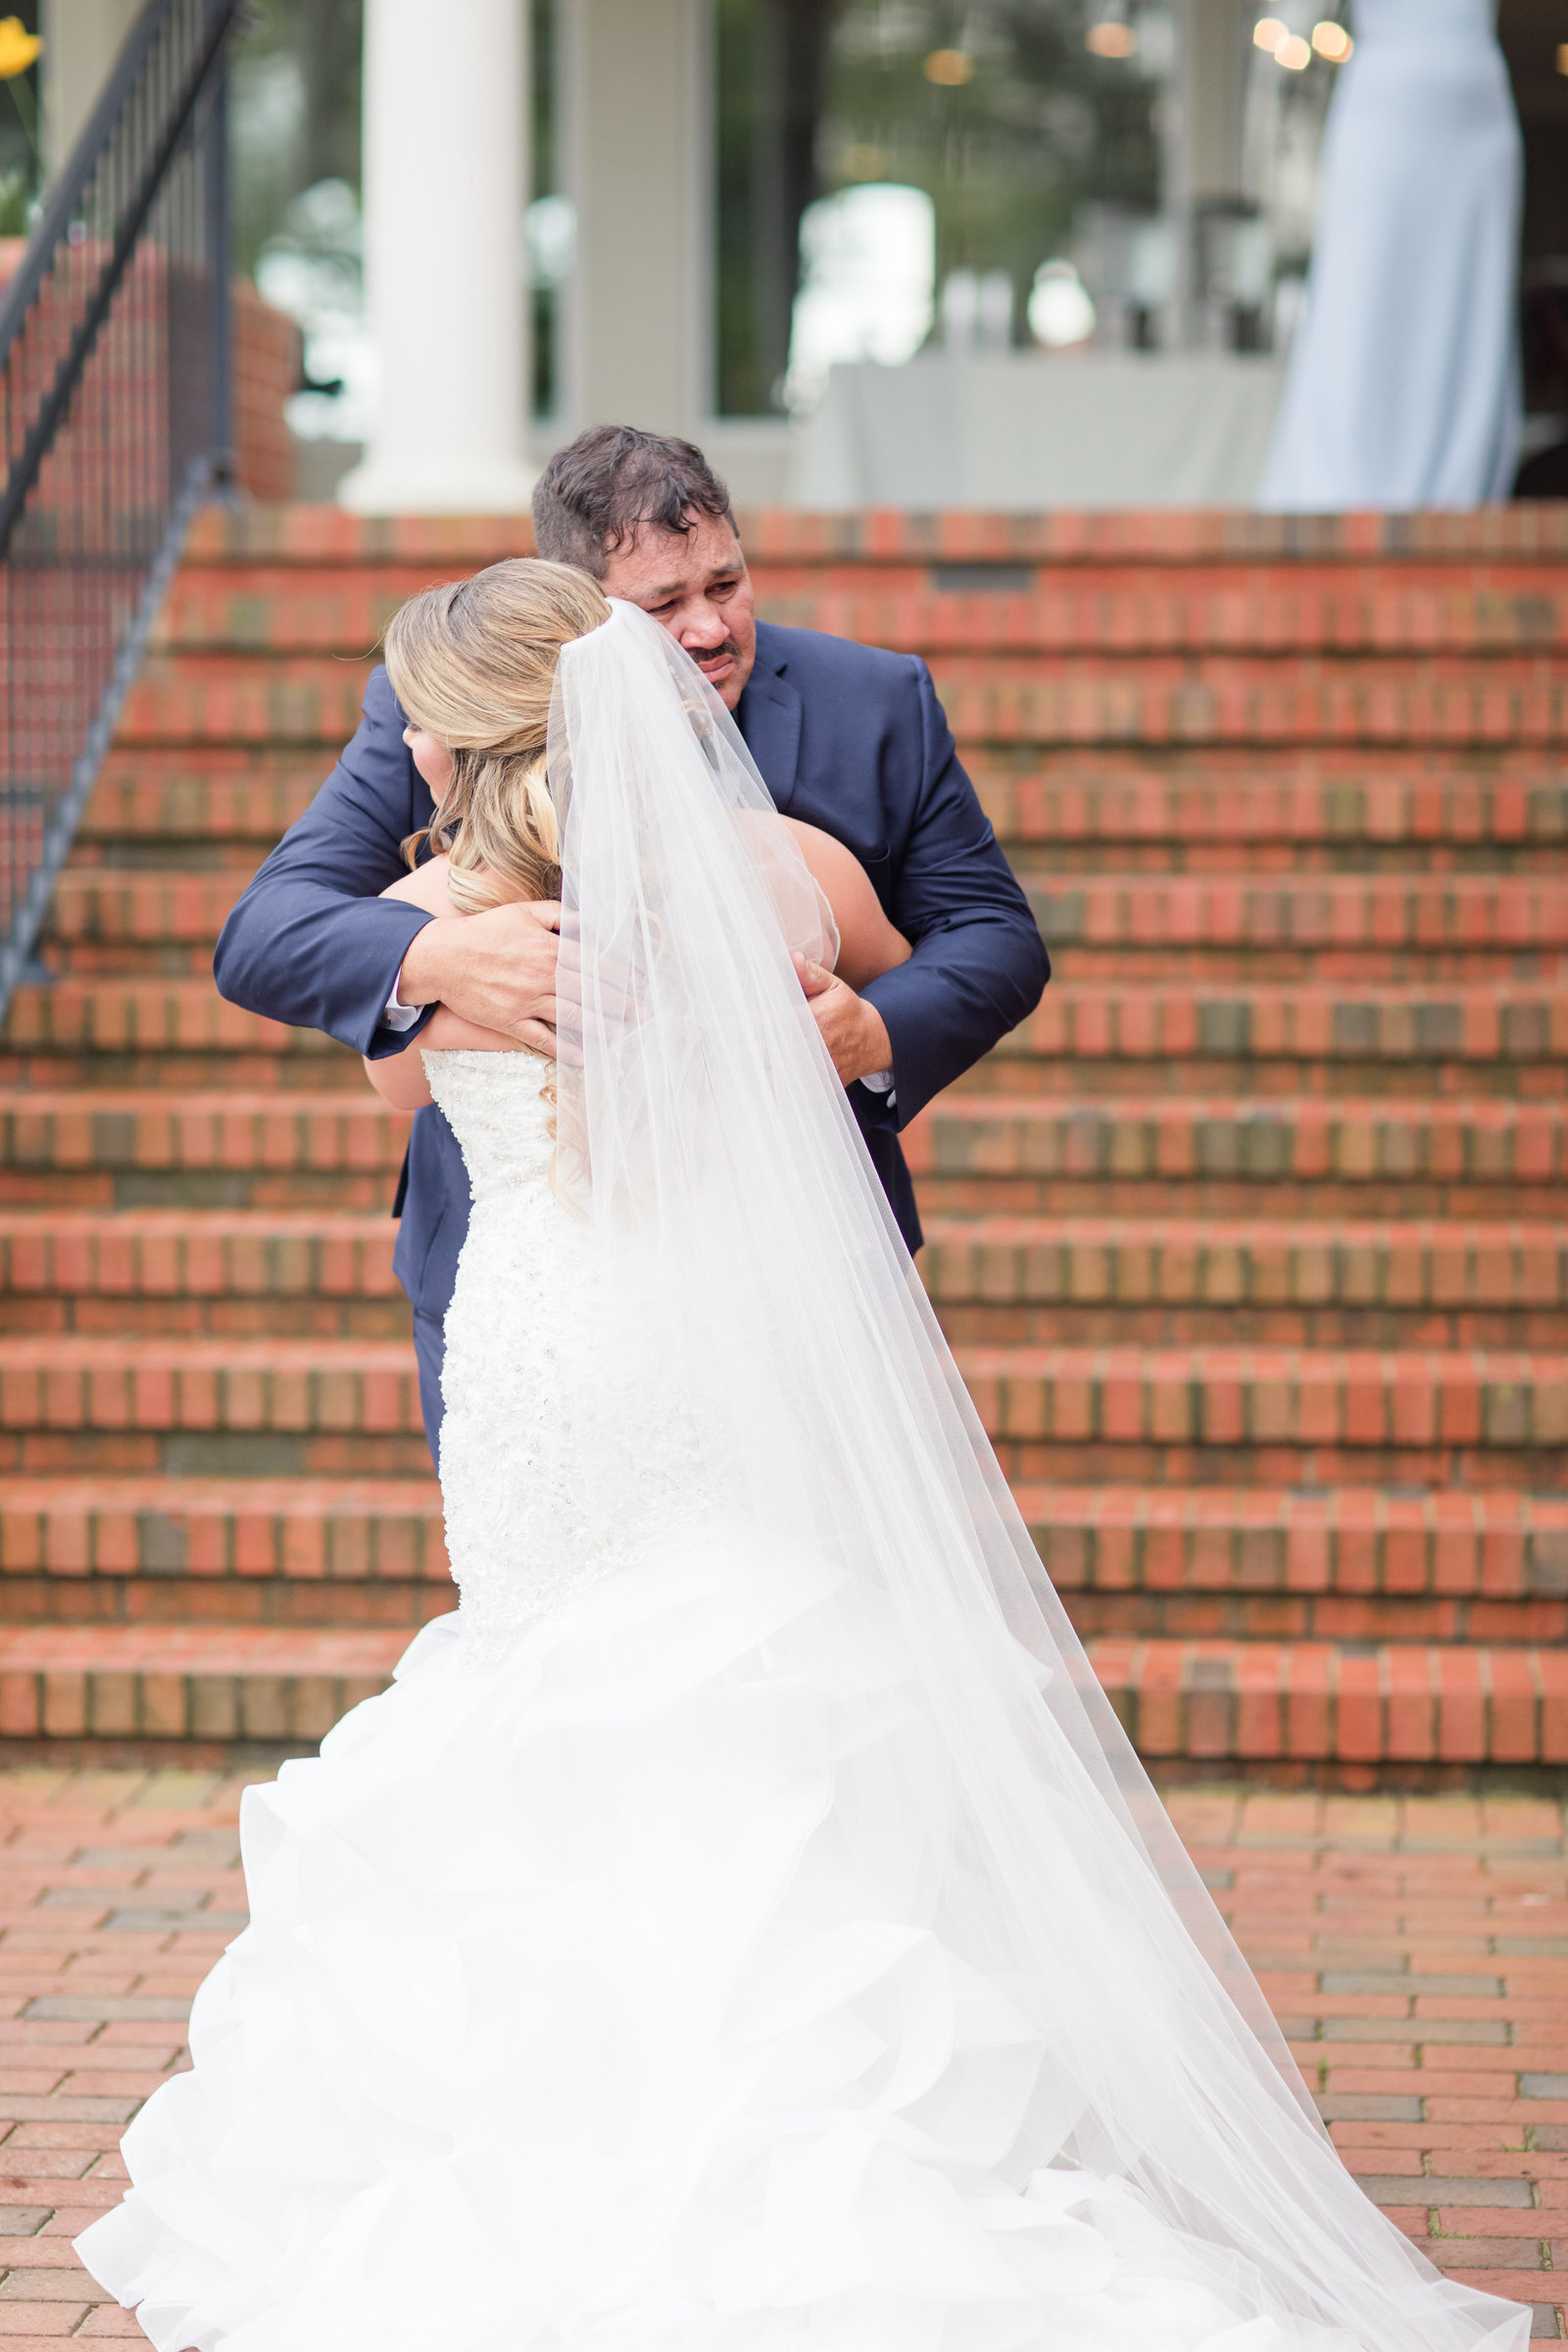 Jennifer_B_Photography-Pinehurst_Club-Pinehurst_NC-Wedding_Day-Caleb___Miranda-JB_Favs-2019-0077